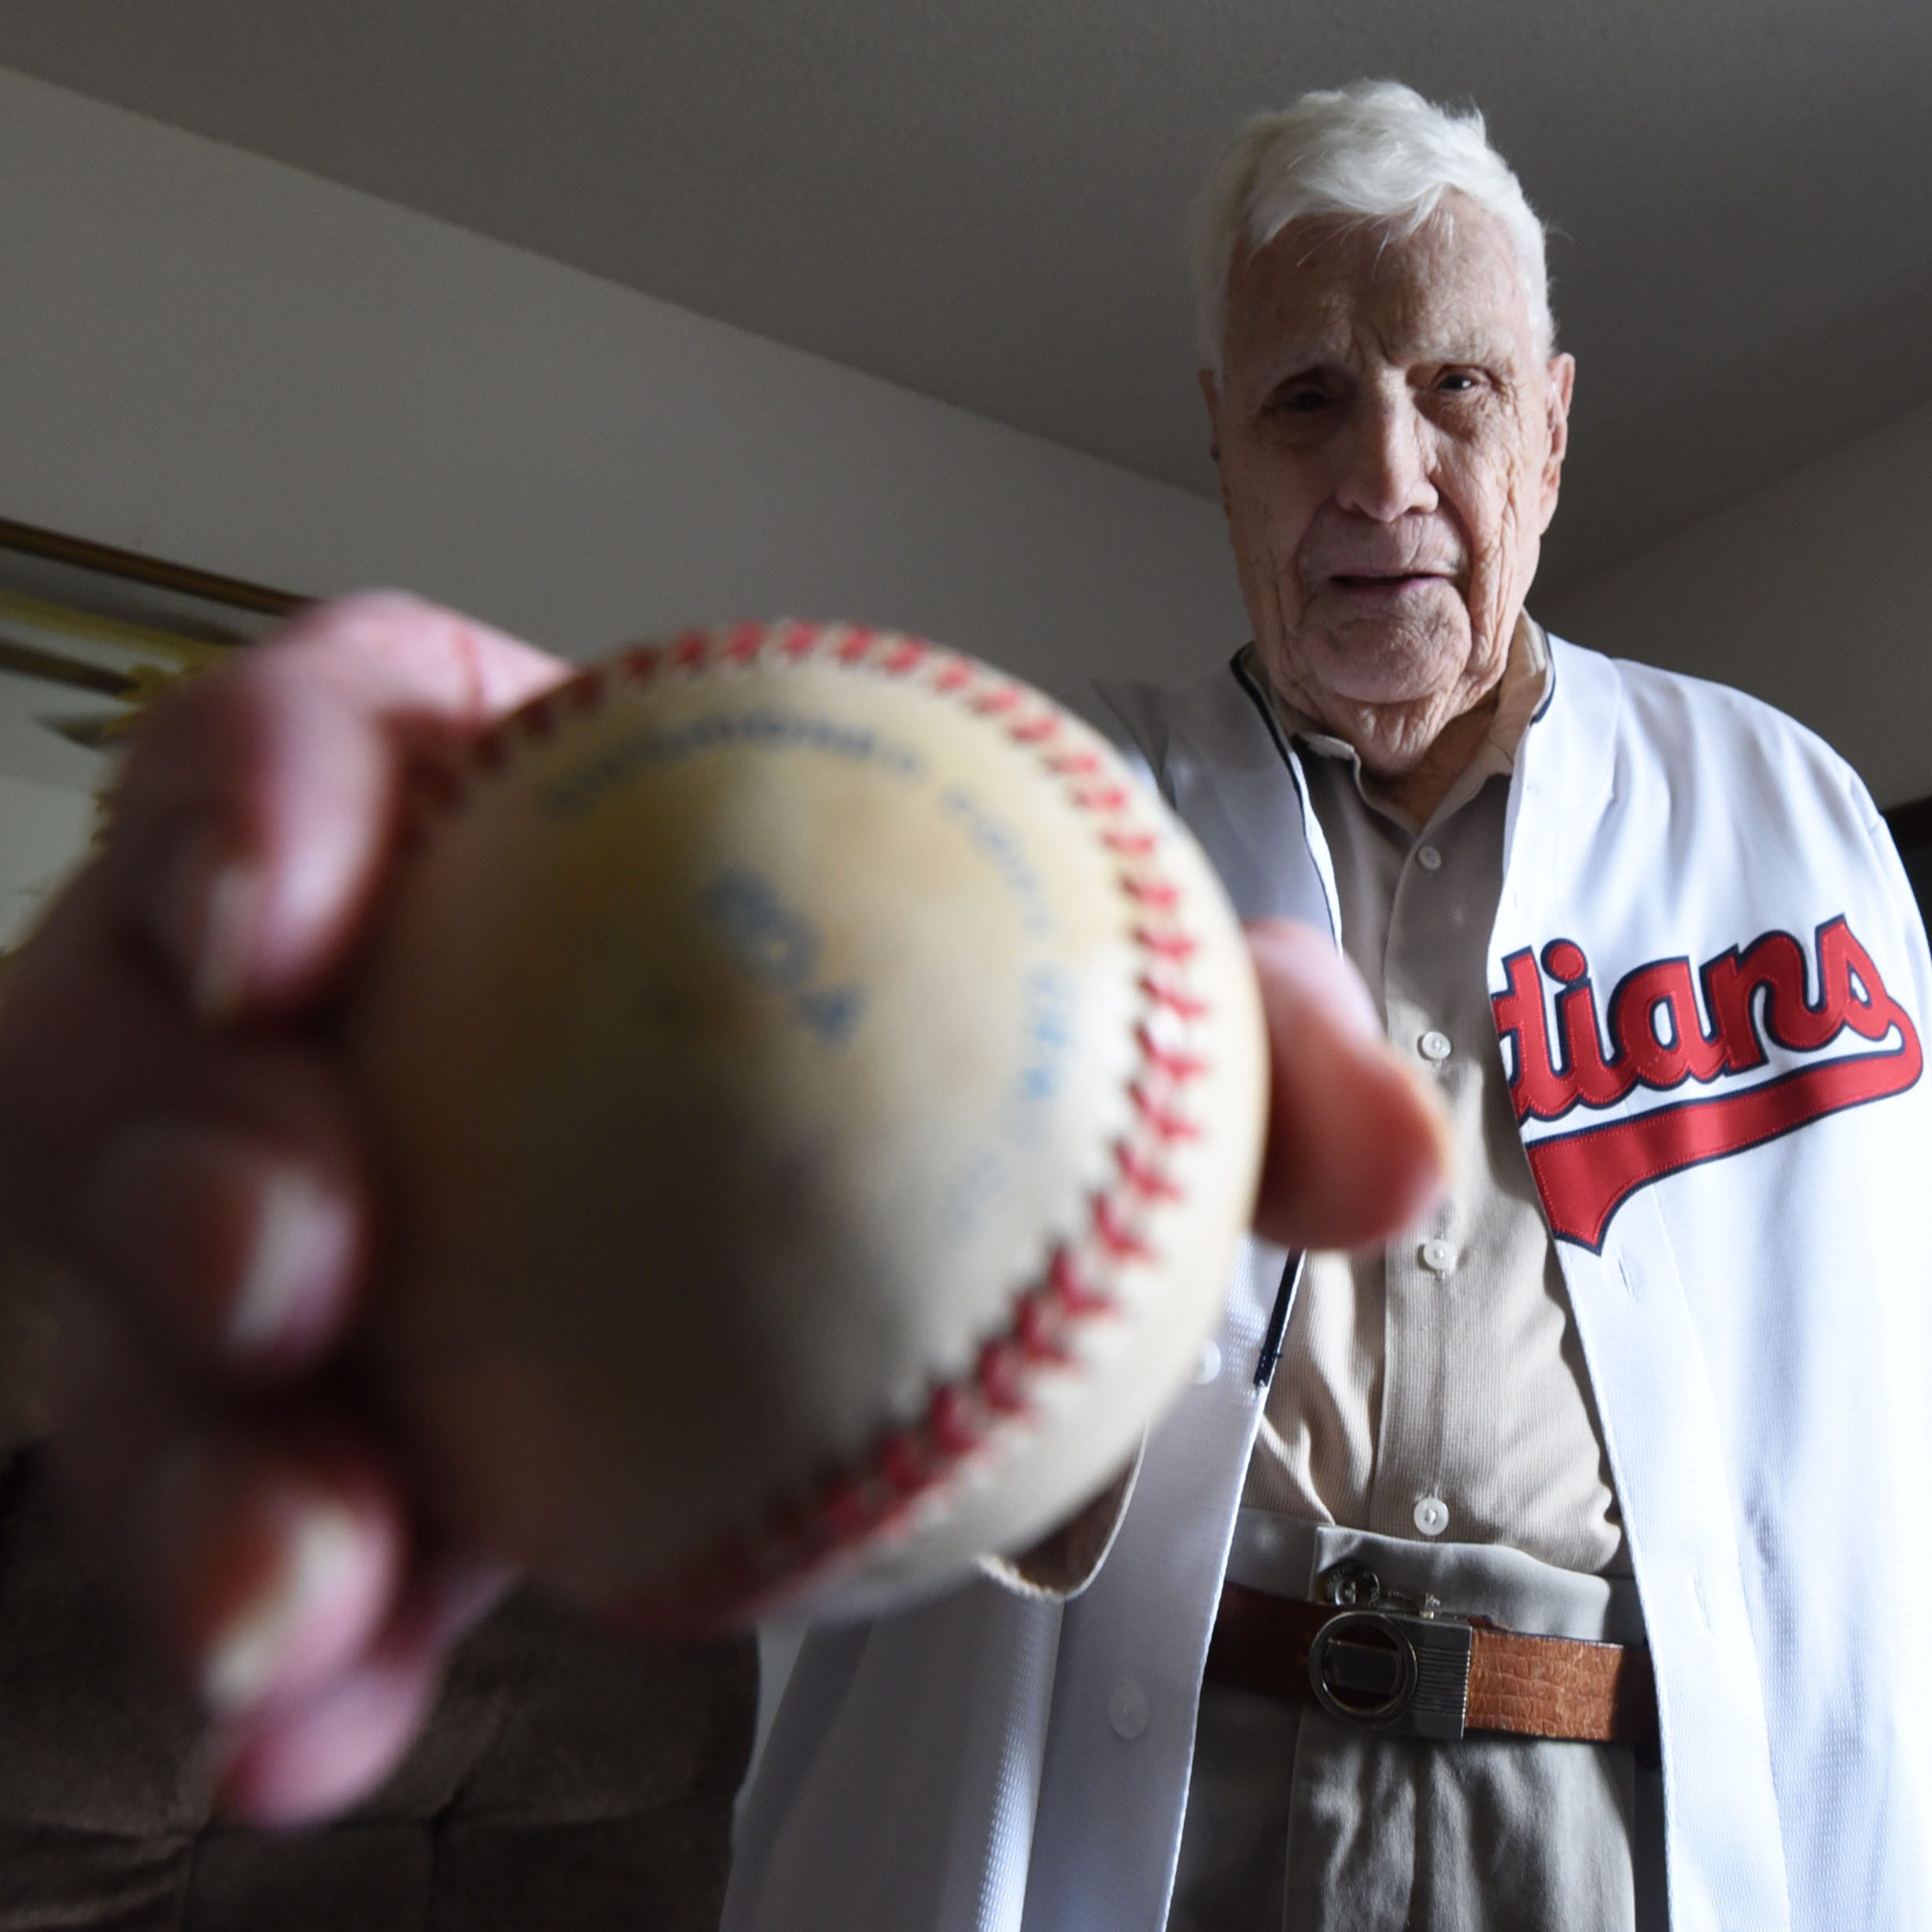 Nonagenerian WWII veteran throwing out 1st pitch at Tuesday's Indians game